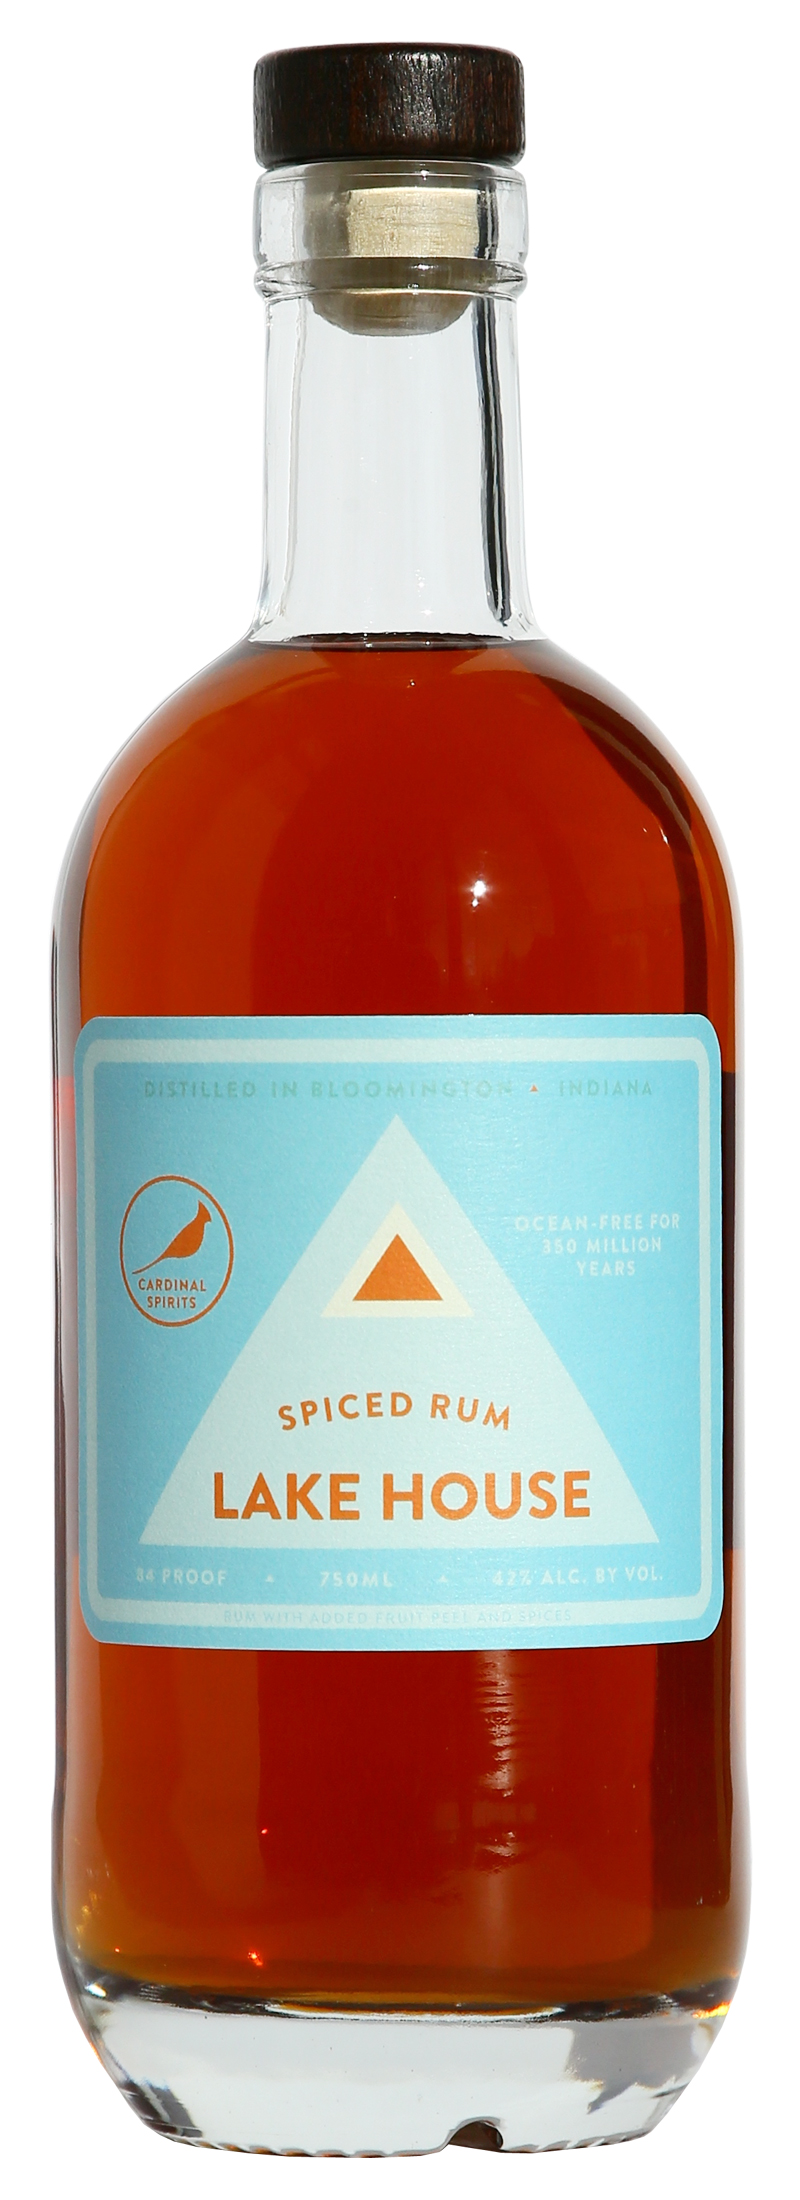 LakeHouseSpicedRum-750ml-WhiteBG (1).jpg